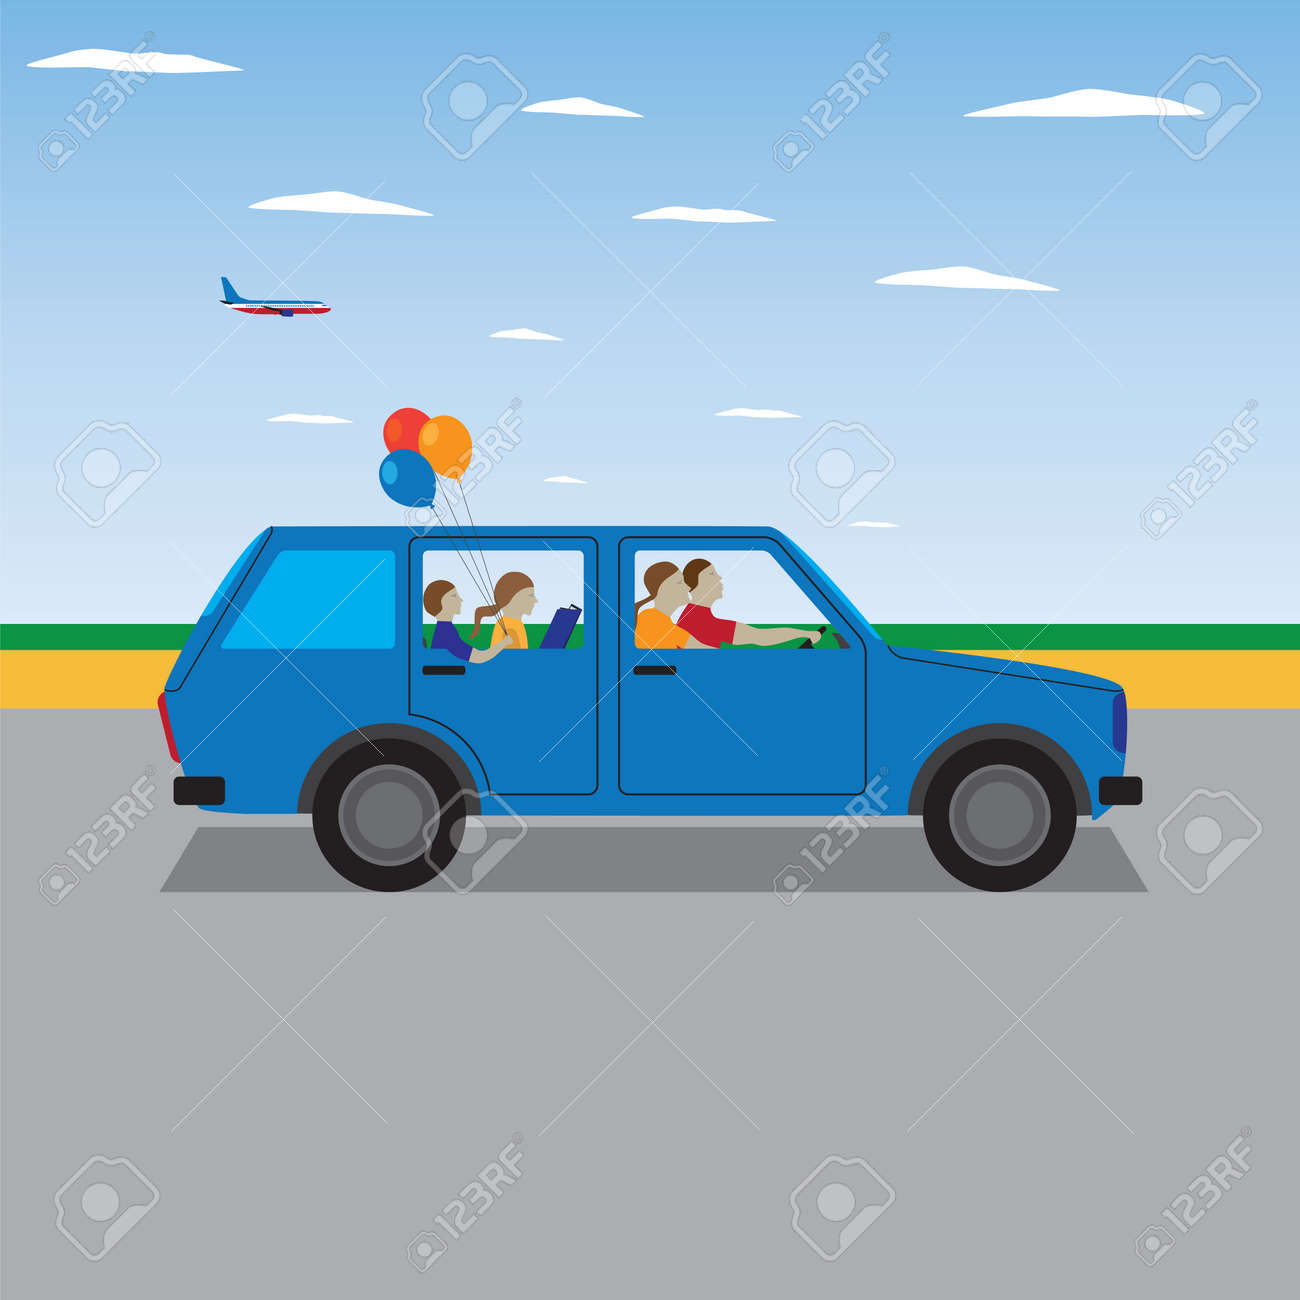 Family traveling by car. Family summer vacation, tourism and journey. Vector illustration. Elements for design. - 44959553